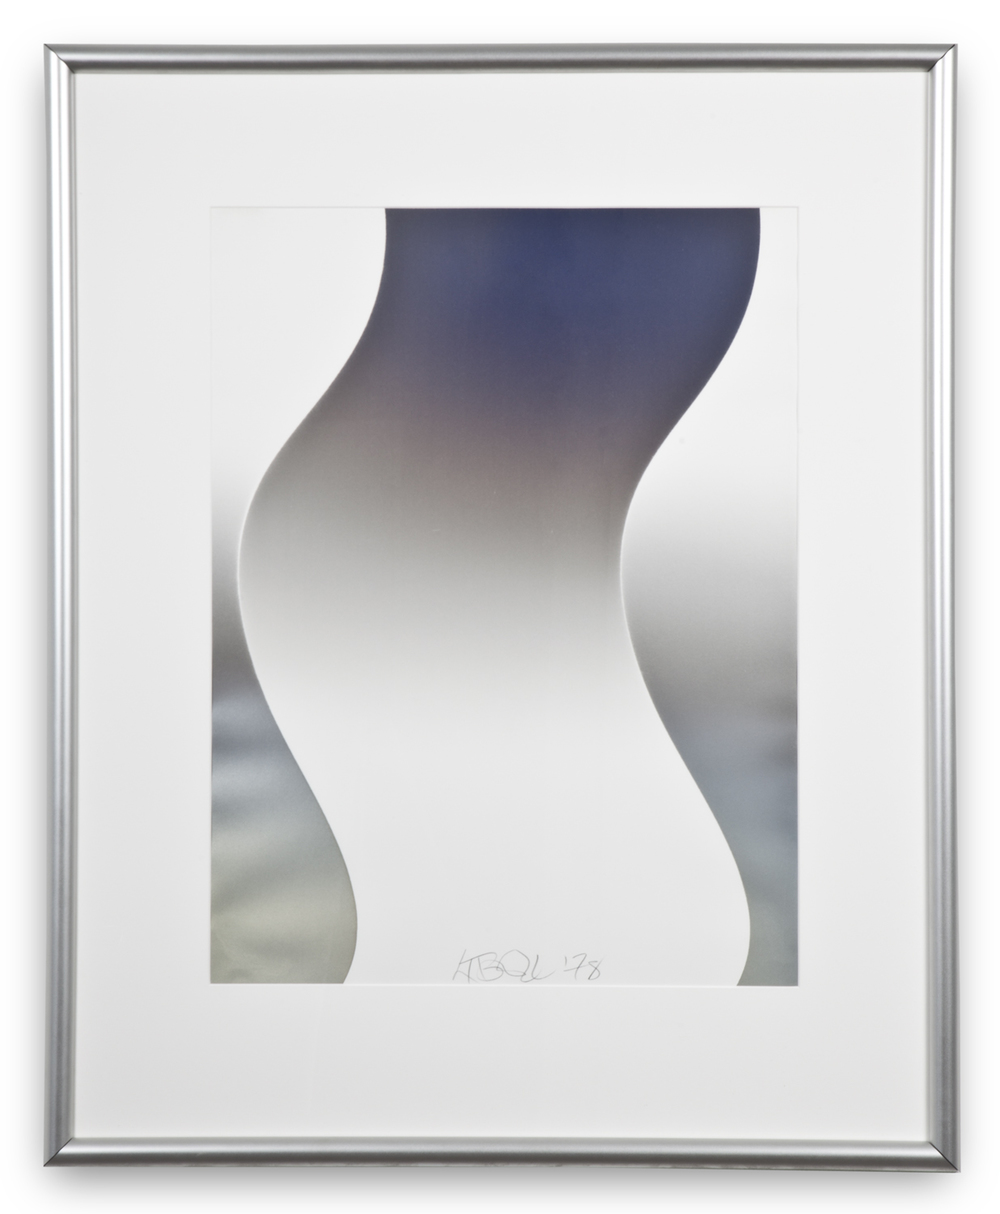 "Larry Bell, ""Untitled (Vapor Series),"" 1978, vaporized metal on paper, 41 1/2 x 33 3/4 inches"